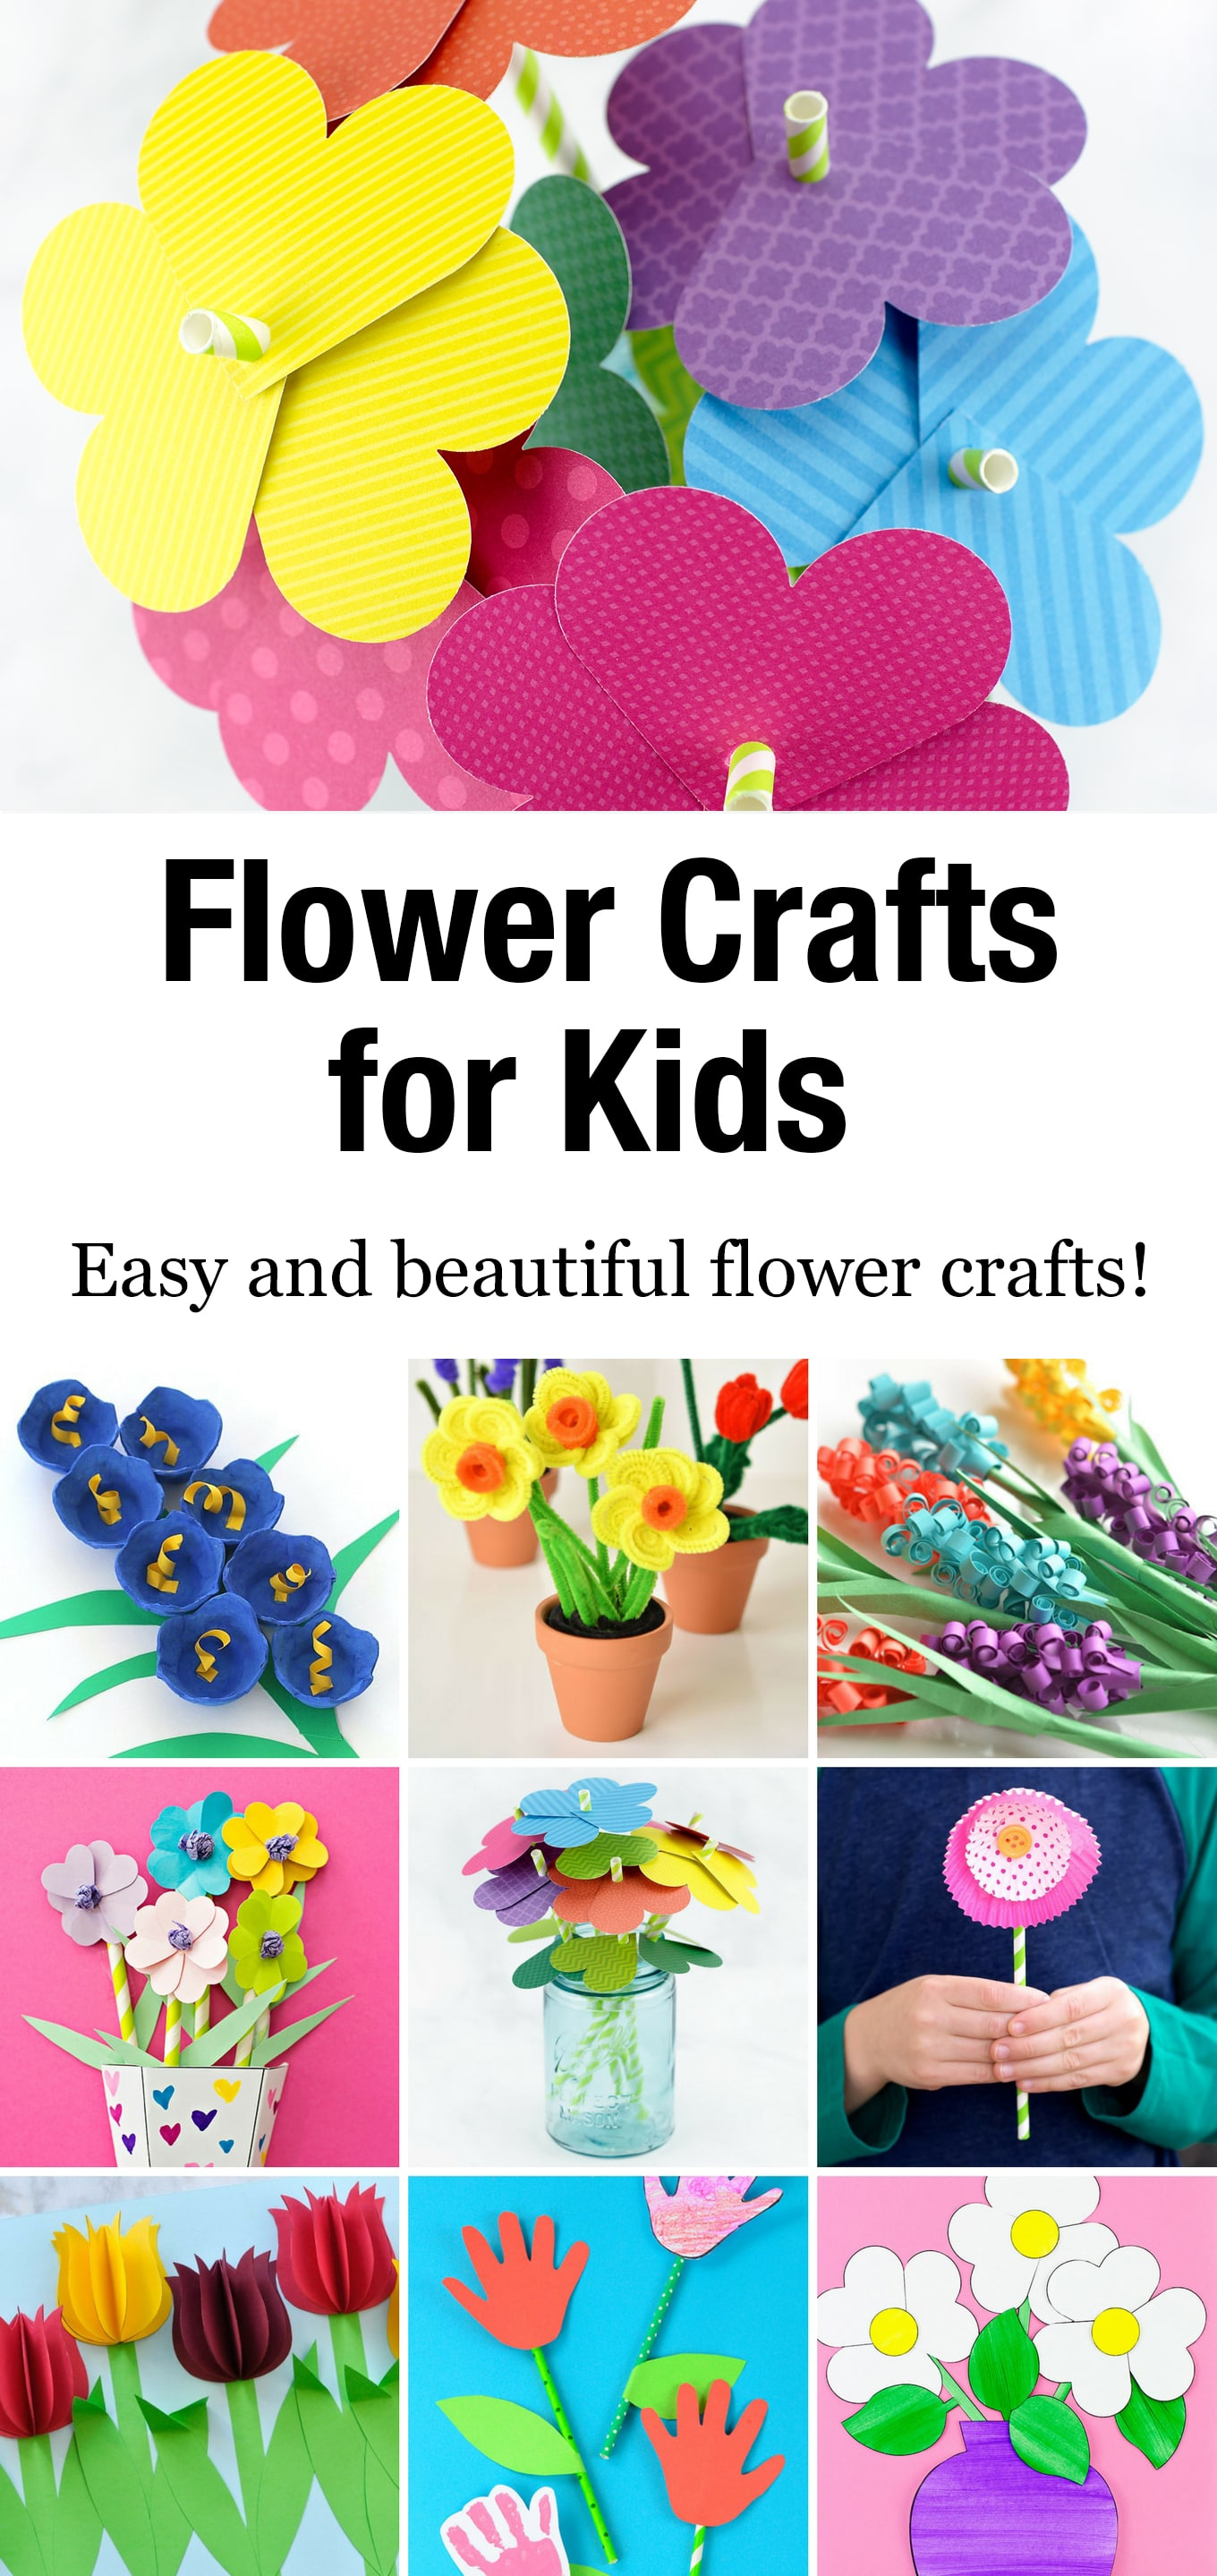 These easy and beautifulflower crafts for kids are perfect for spring crafting, Mother's Day, or just an afternoon of fun! #flowercrafts #forkids #spring #diy via @firefliesandmudpies